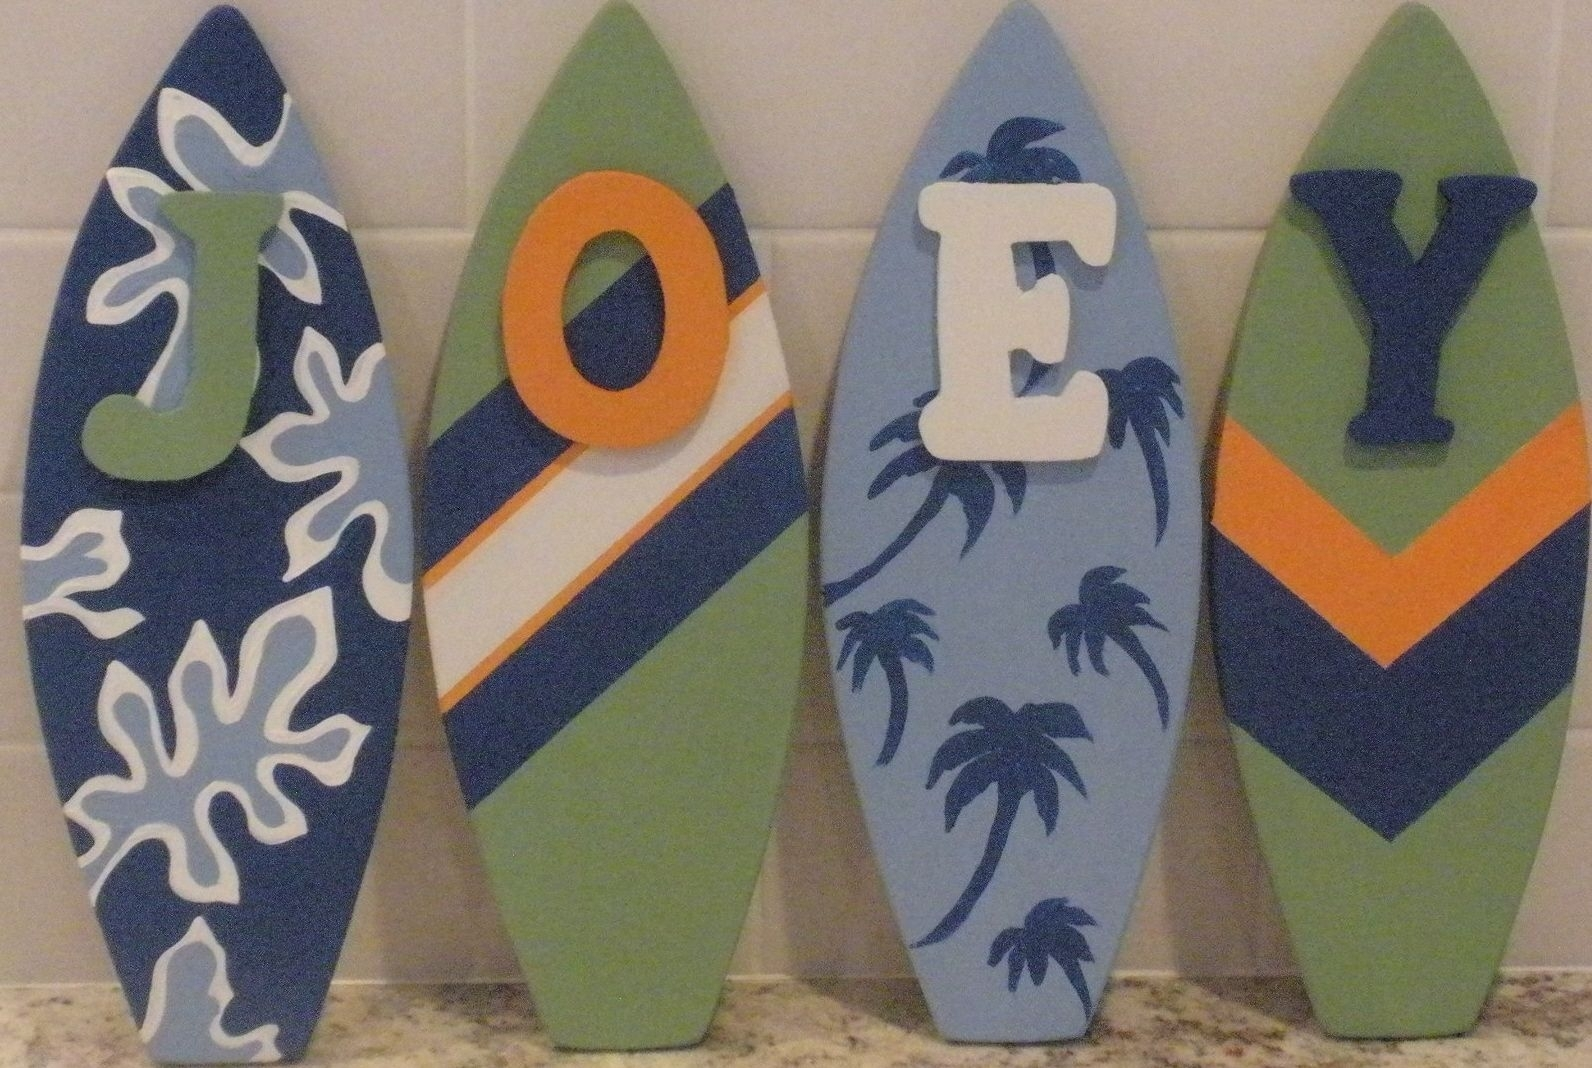 Diy Surfboard Wall Décor Ideas — Room Decor : How To Select Pertaining To Surfboard Wall Art (View 4 of 20)